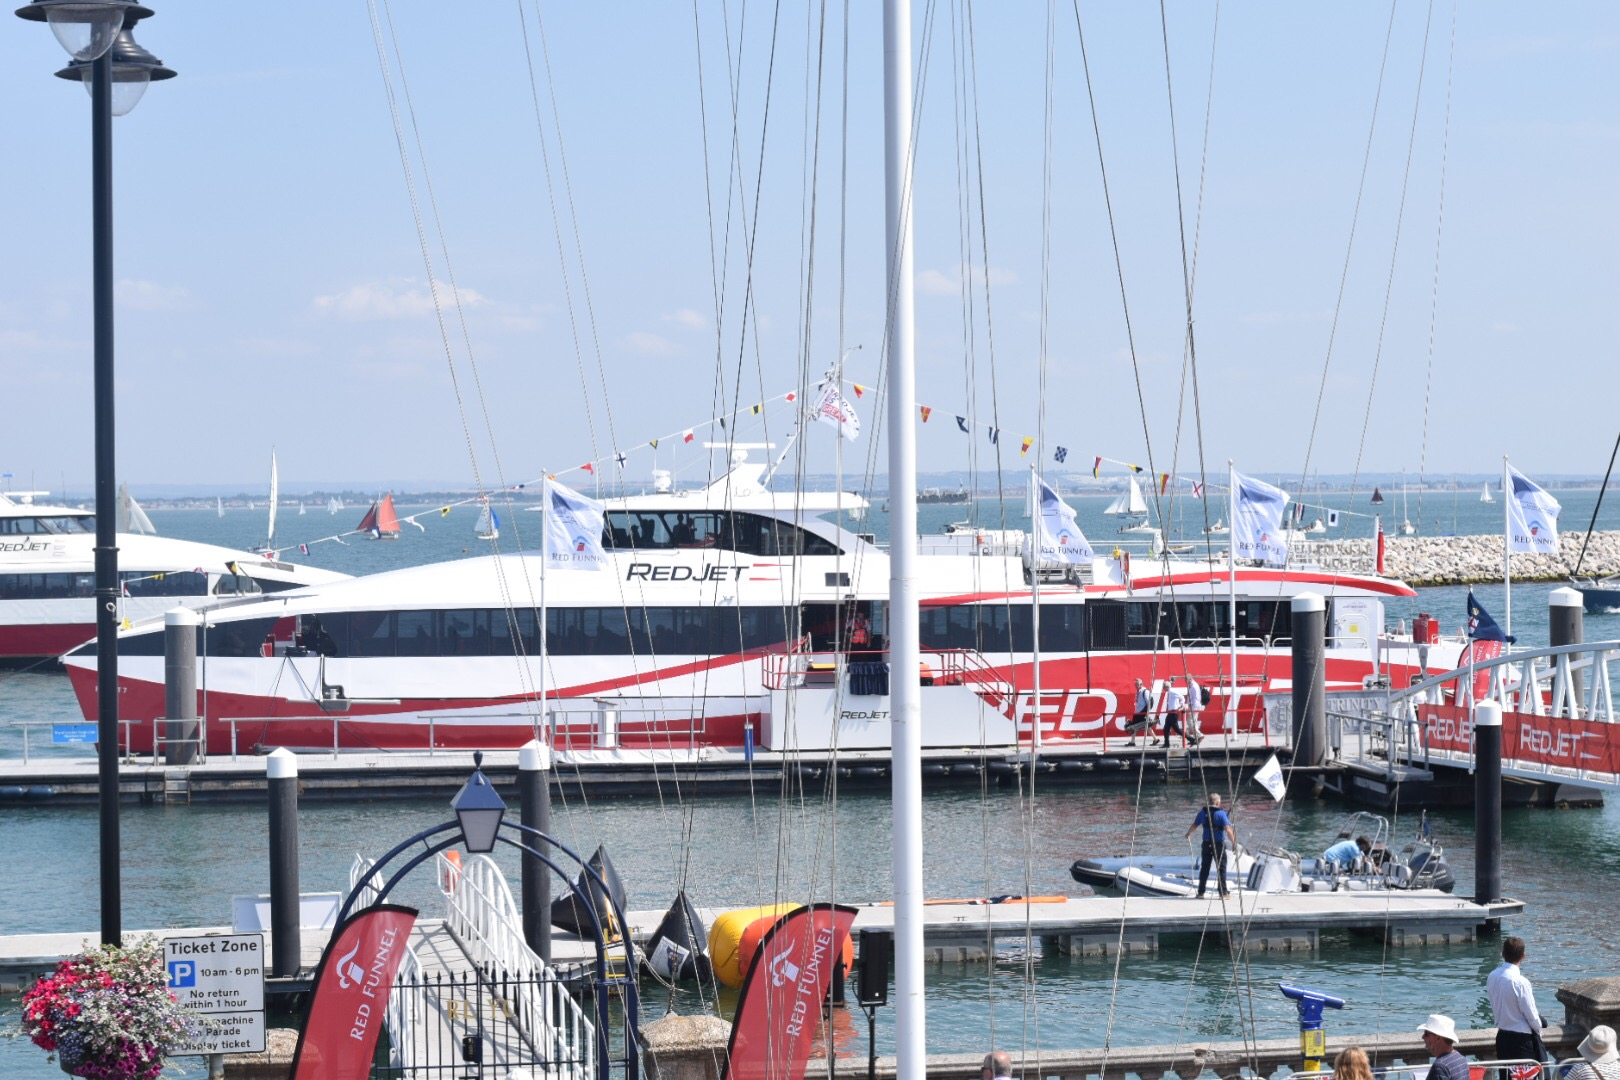 Isle of Wight: Red Funnel Ferries Fleet Launch Red Jet 7